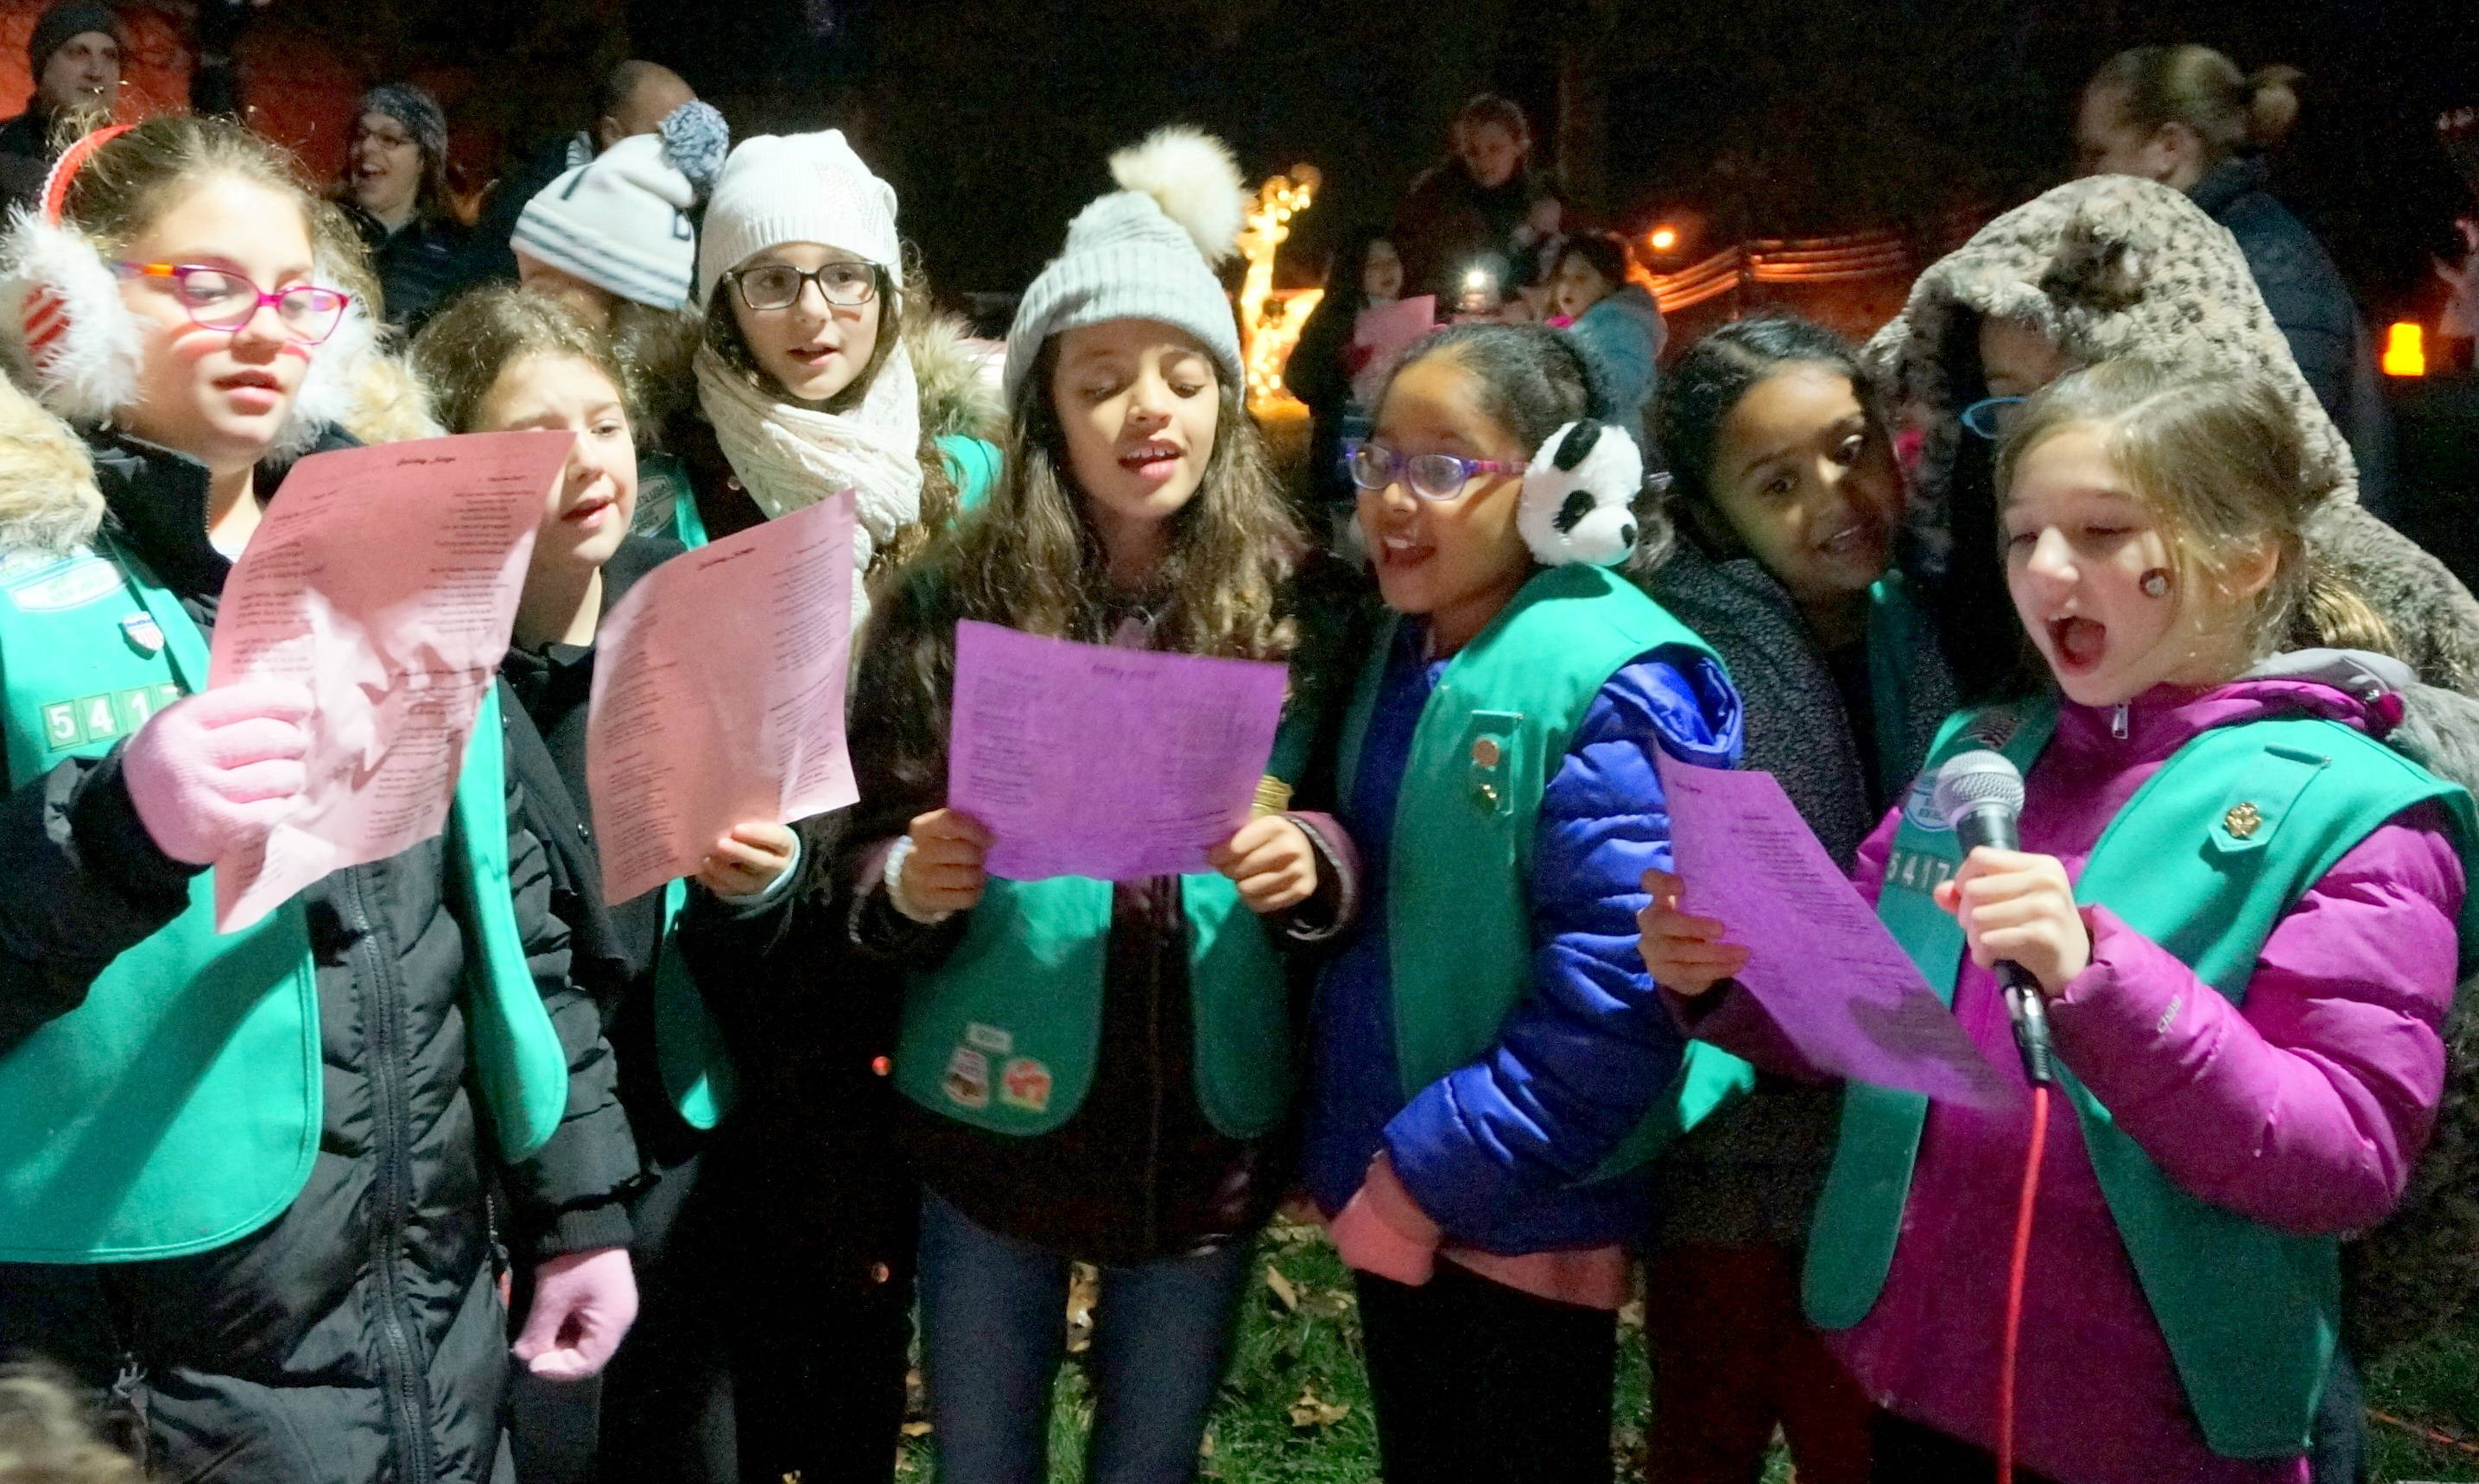 7f7cad9ac9d870729d58_a1_girl_scouts_different_light.JPG